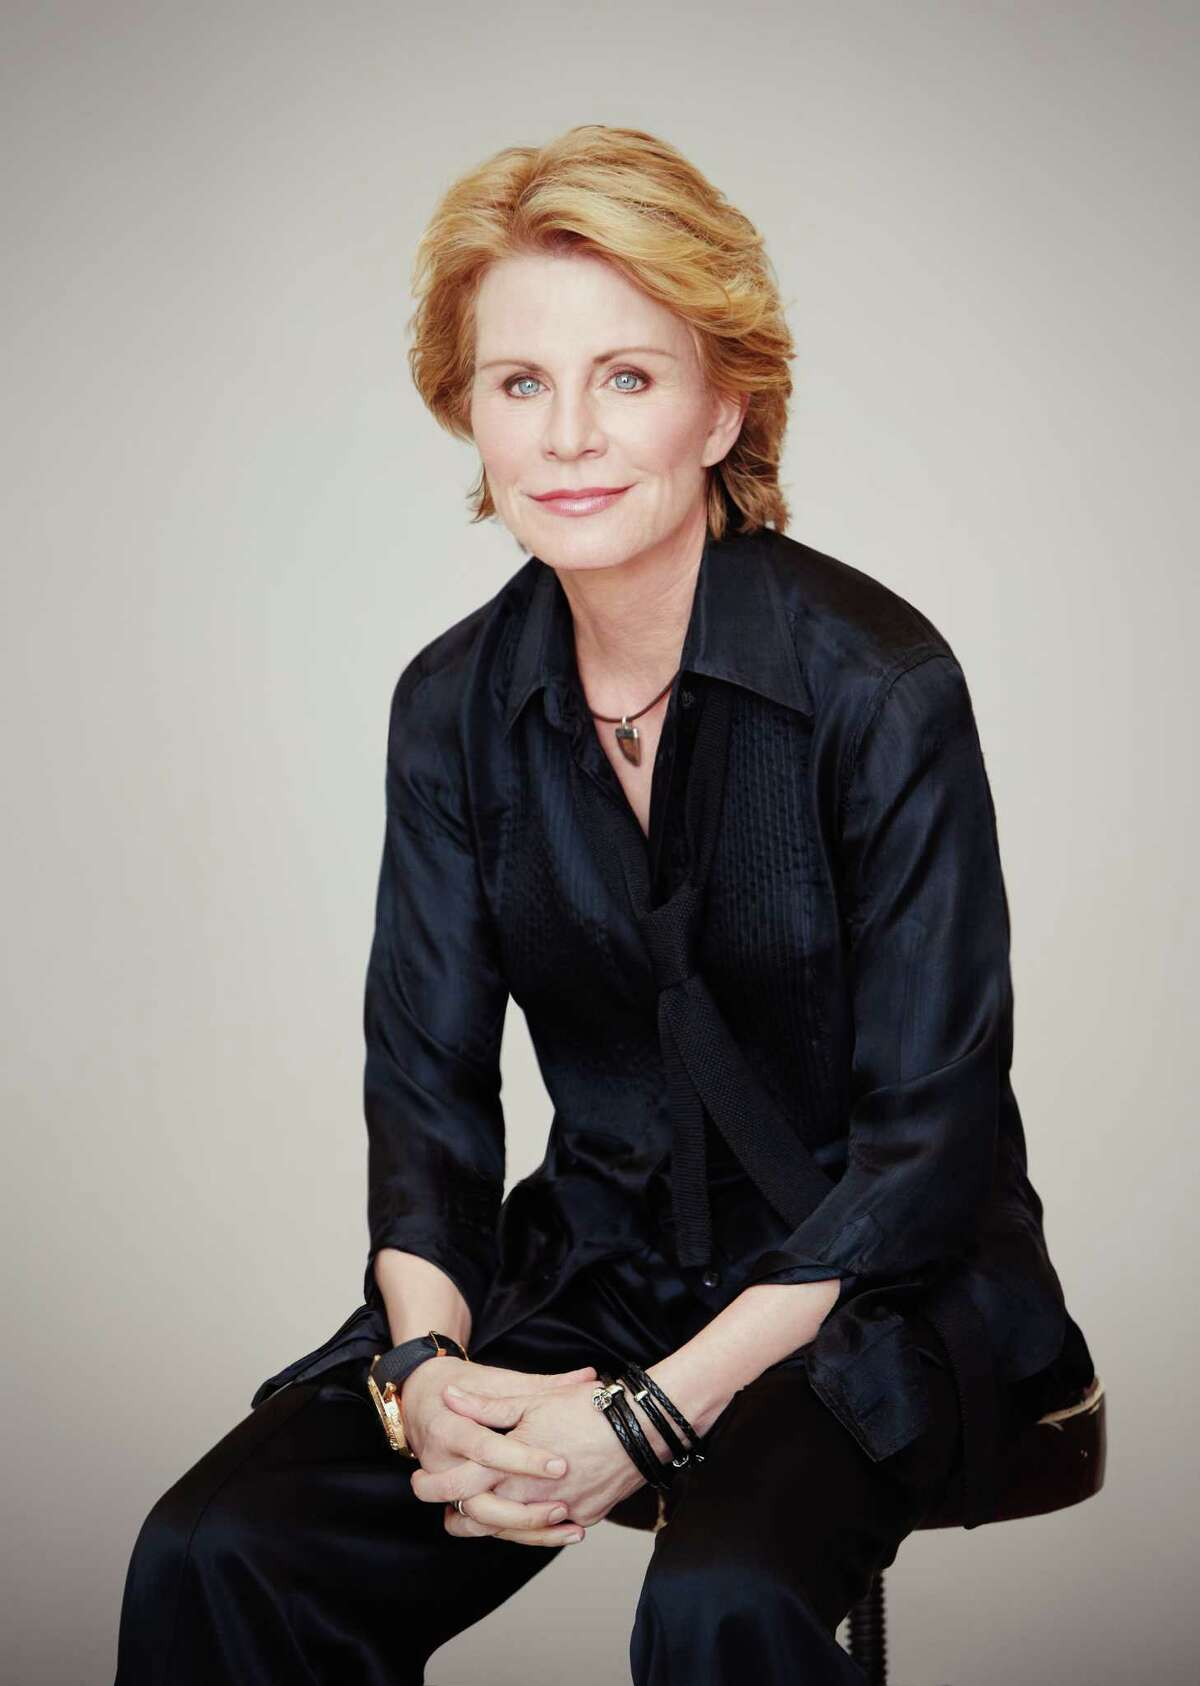 Patricia Cornwell is launching the book tour for her latest Kay Scarpetta thriller,